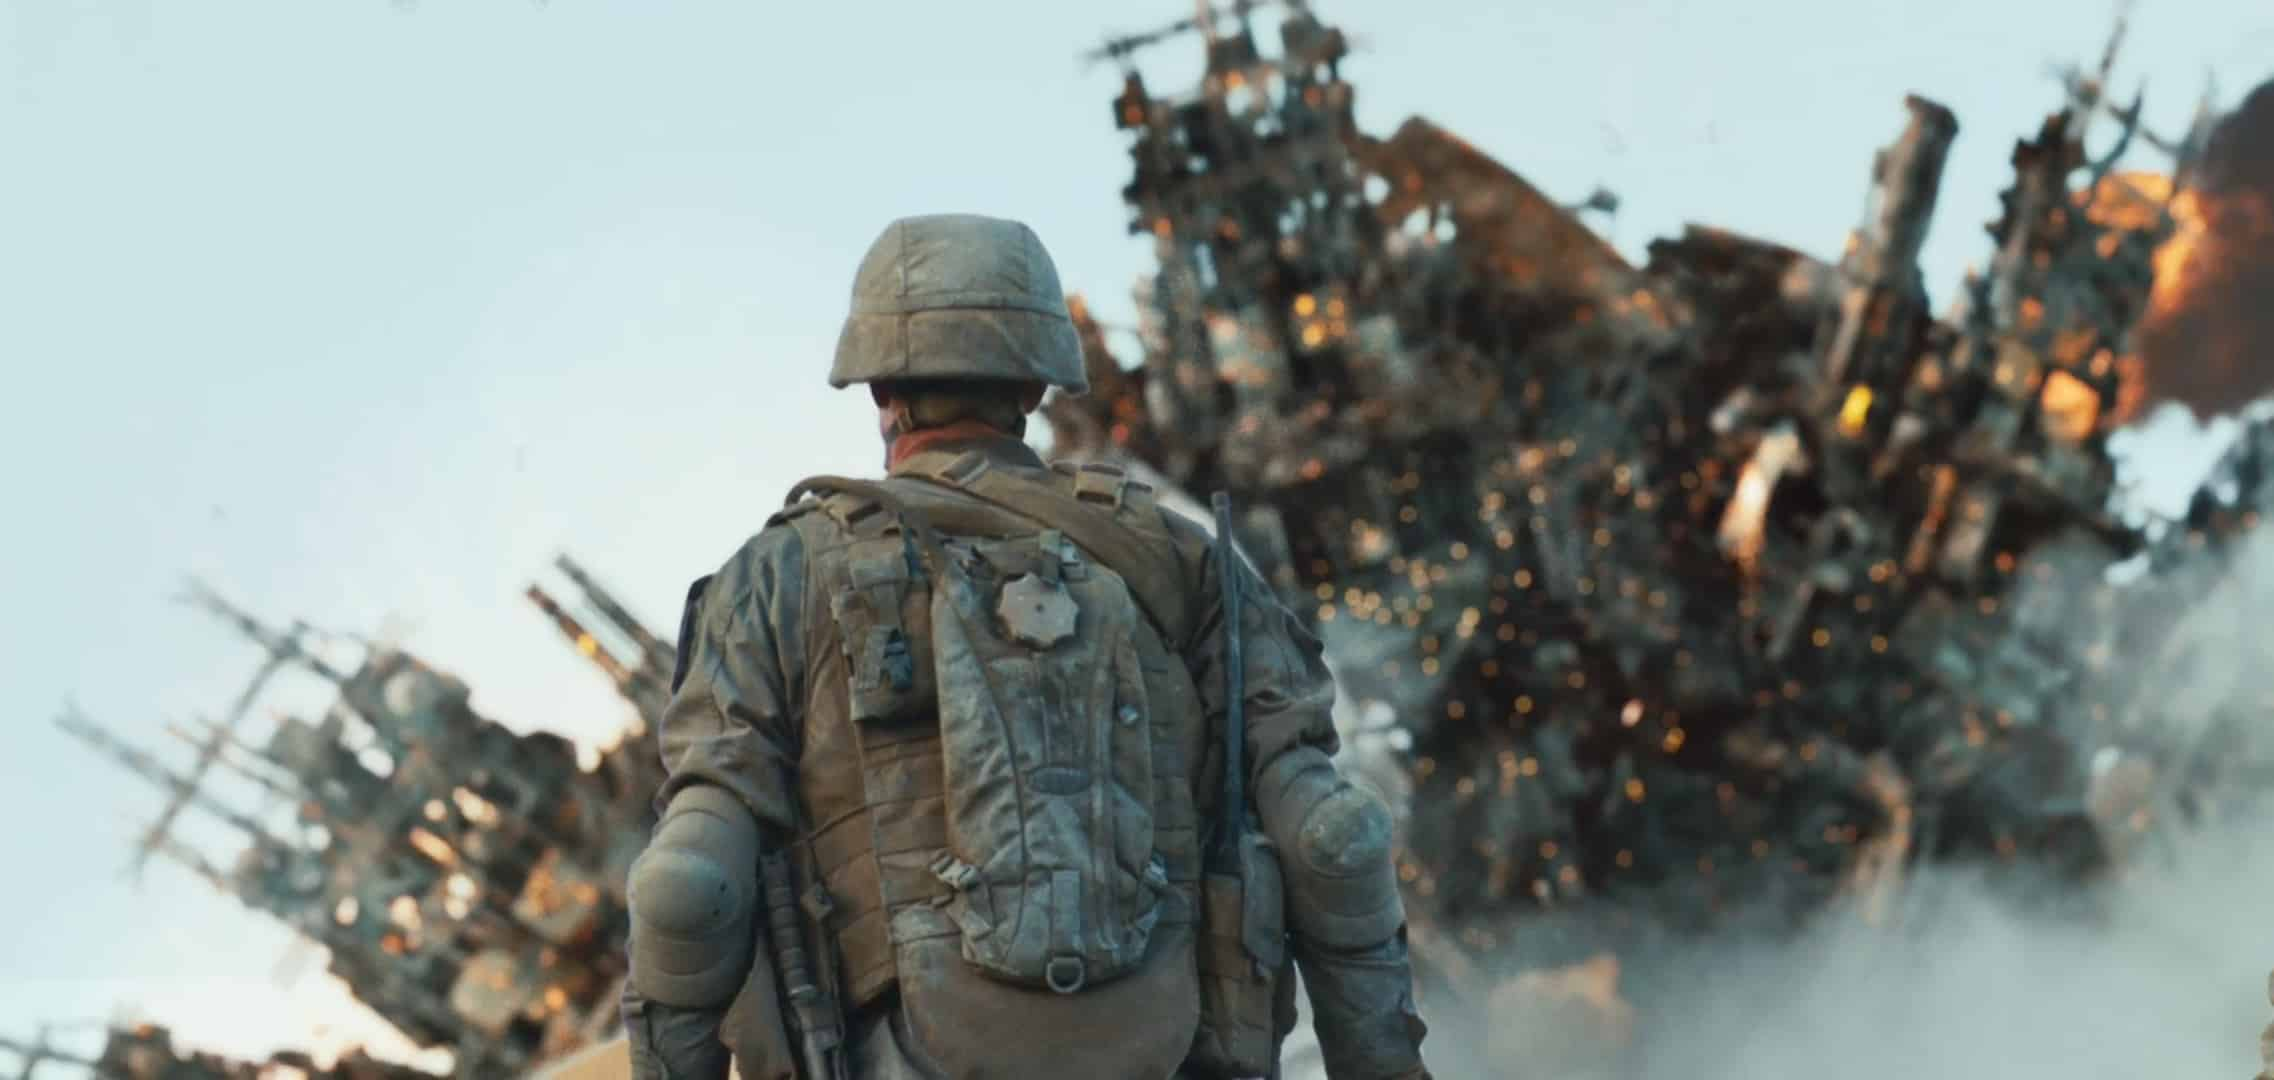 BATTLE LOS ANGELES action sci-fi drama military helicopter soldier ...